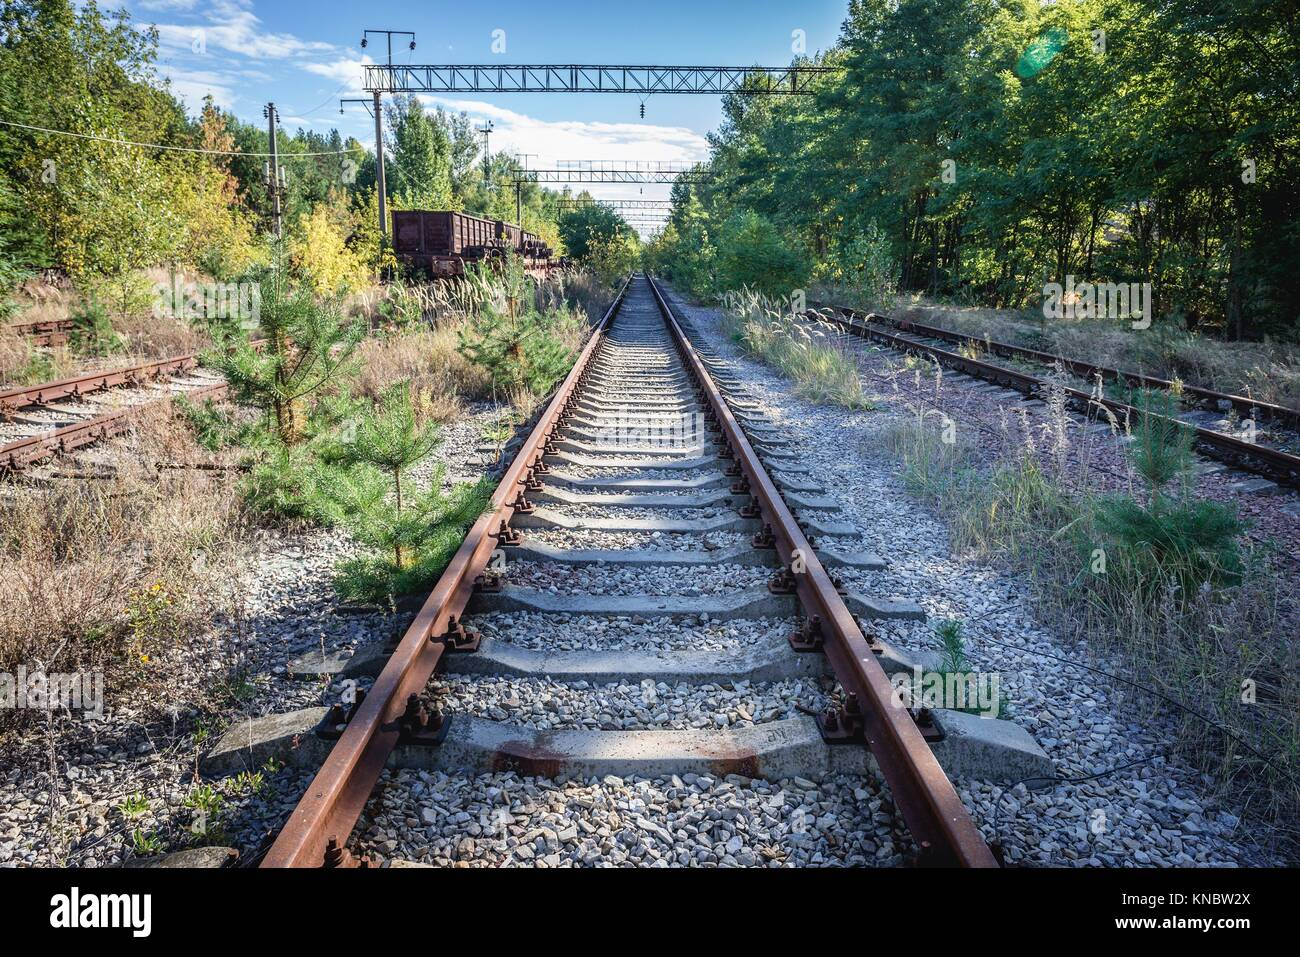 Abandoned Yaniv town railway station, Chernobyl Nuclear Power Plant Zone of Alienation around the nuclear reactor - Stock Image